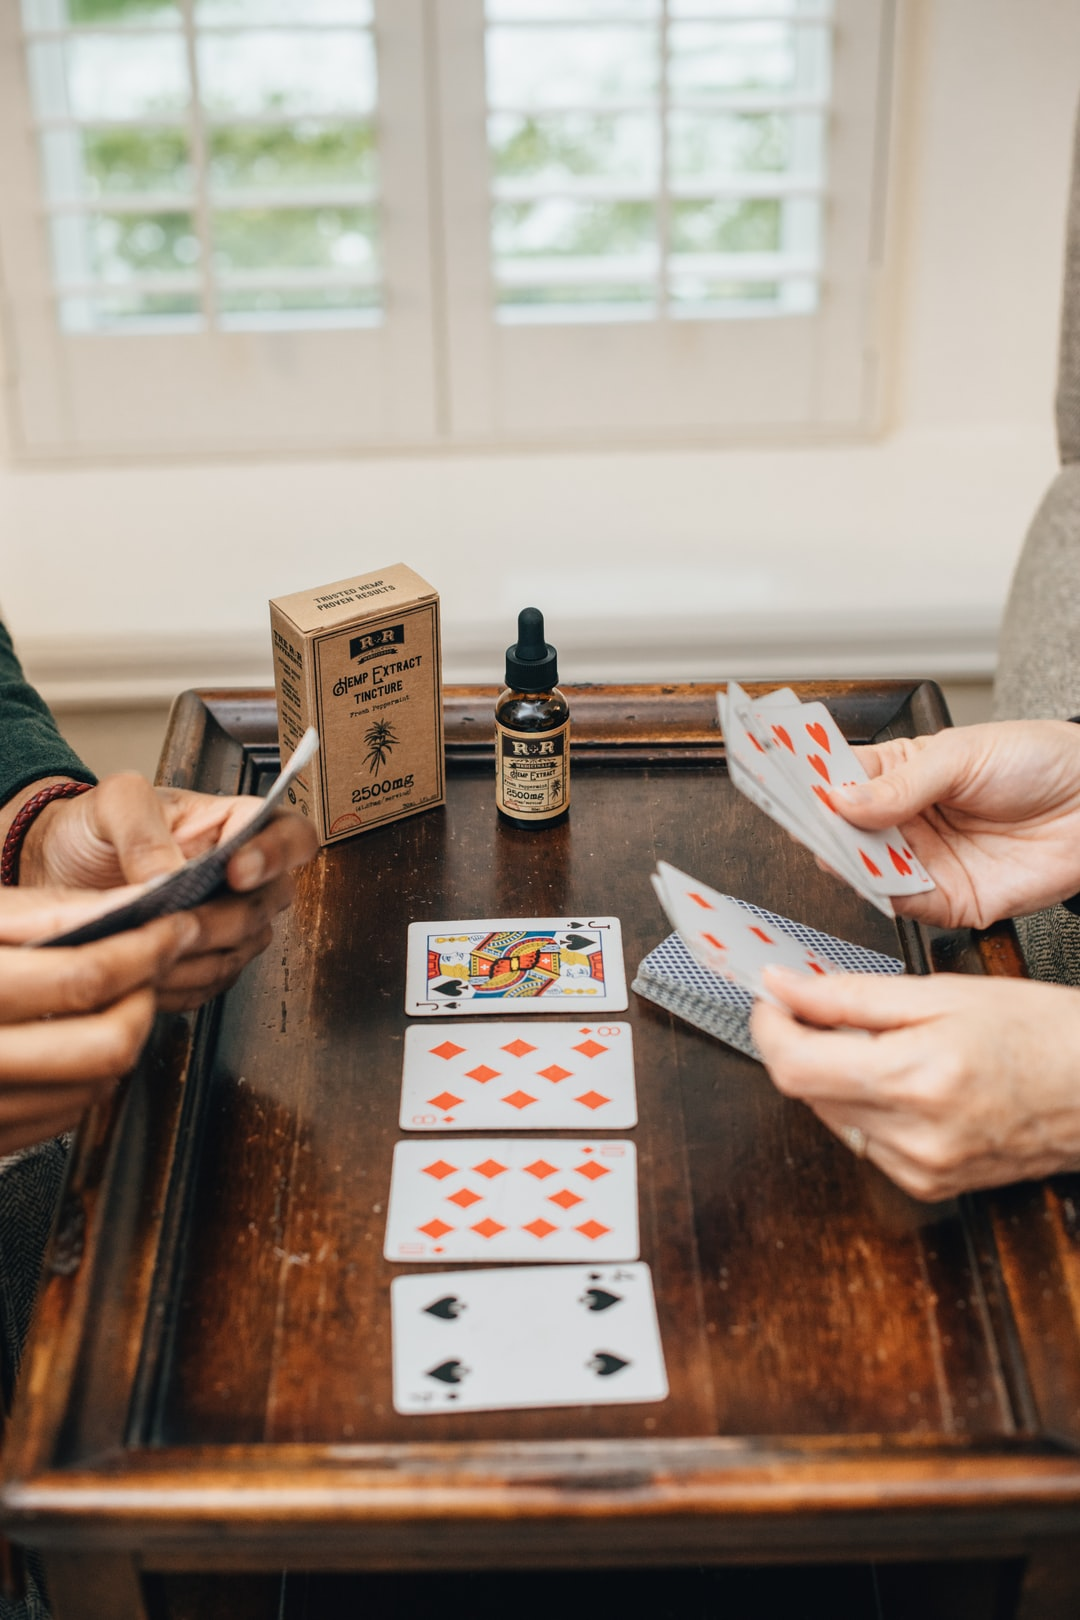 Colorado friends playing cards with hemp extract oil.